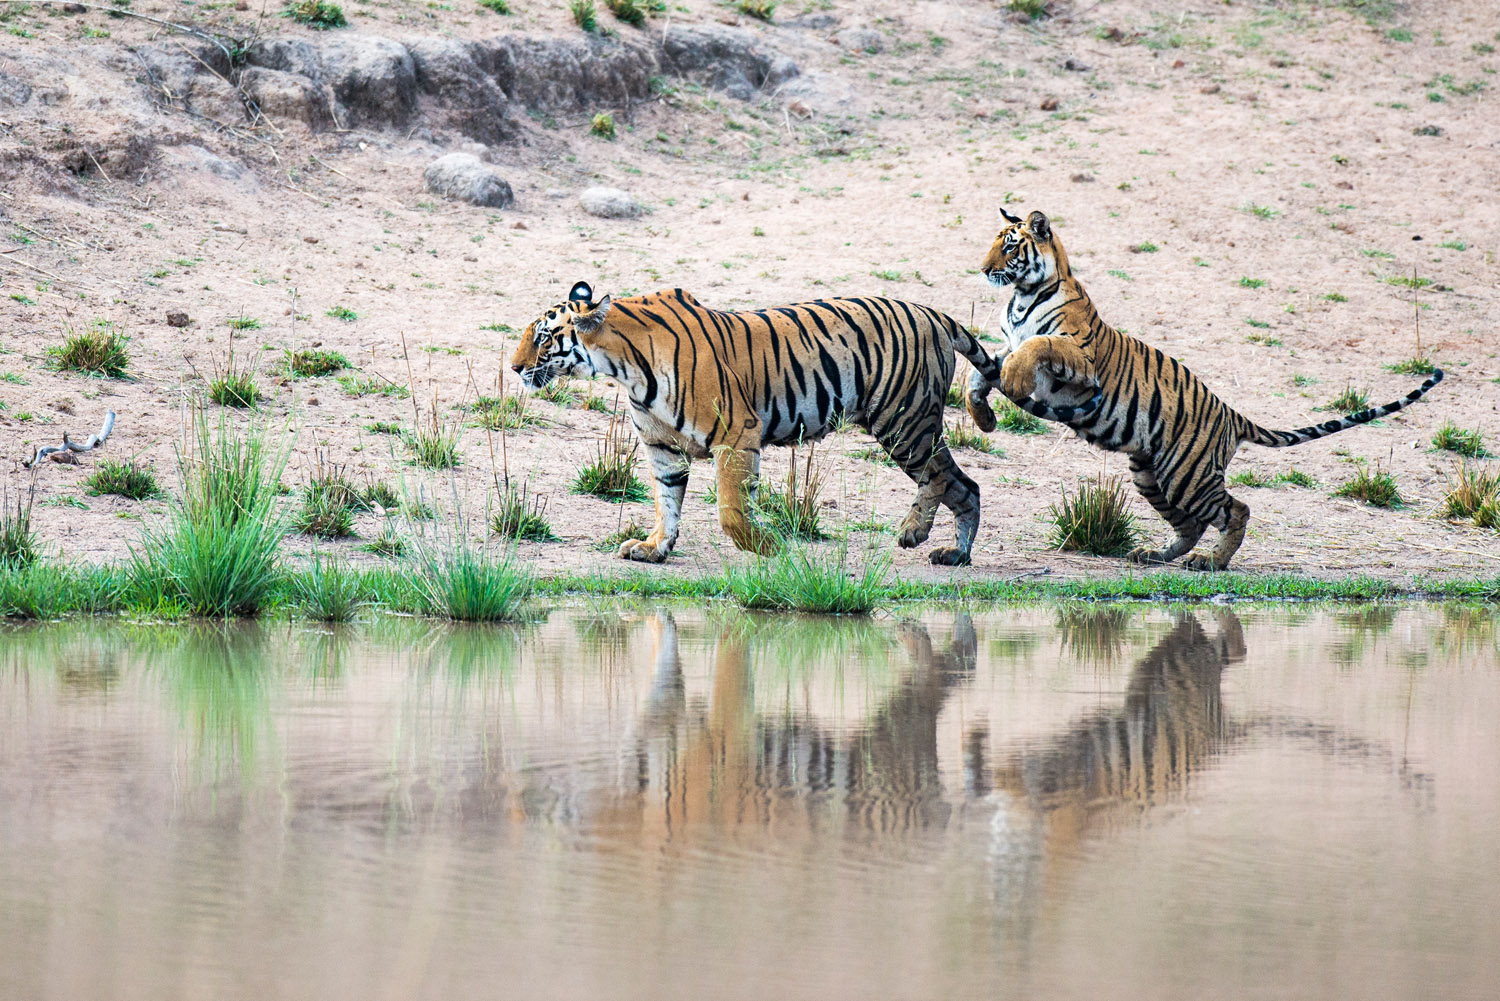 Bengal tiger cub playing with mother at edge of pool, , Bandhavgarh National Park, Madhya Pradesh, India